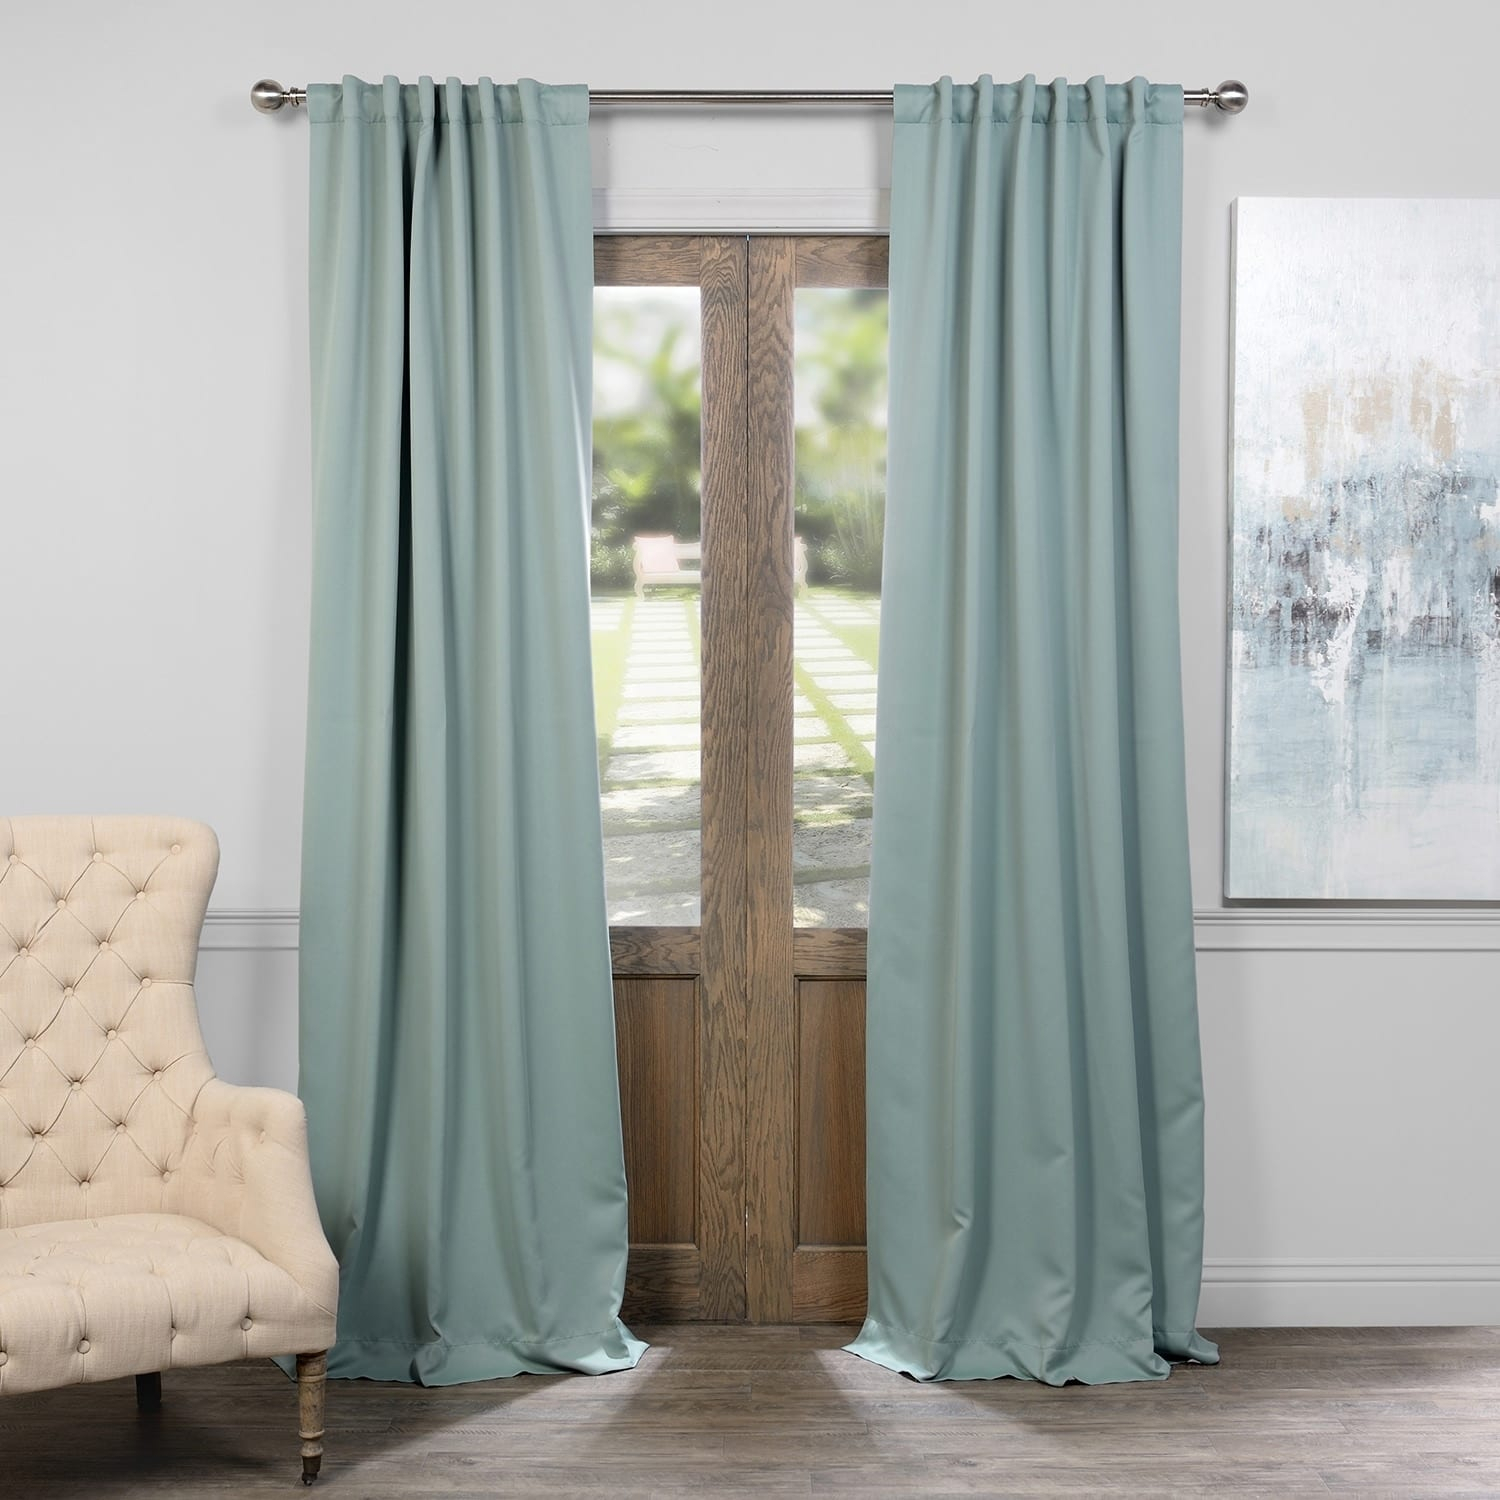 Exclusive Fabrics Thermal Insulated Solid Blackout 120 Inch Curtain Panel Pair – 50 X 120 For Solid Insulated Thermal Blackout Curtain Panel Pairs (View 21 of 30)